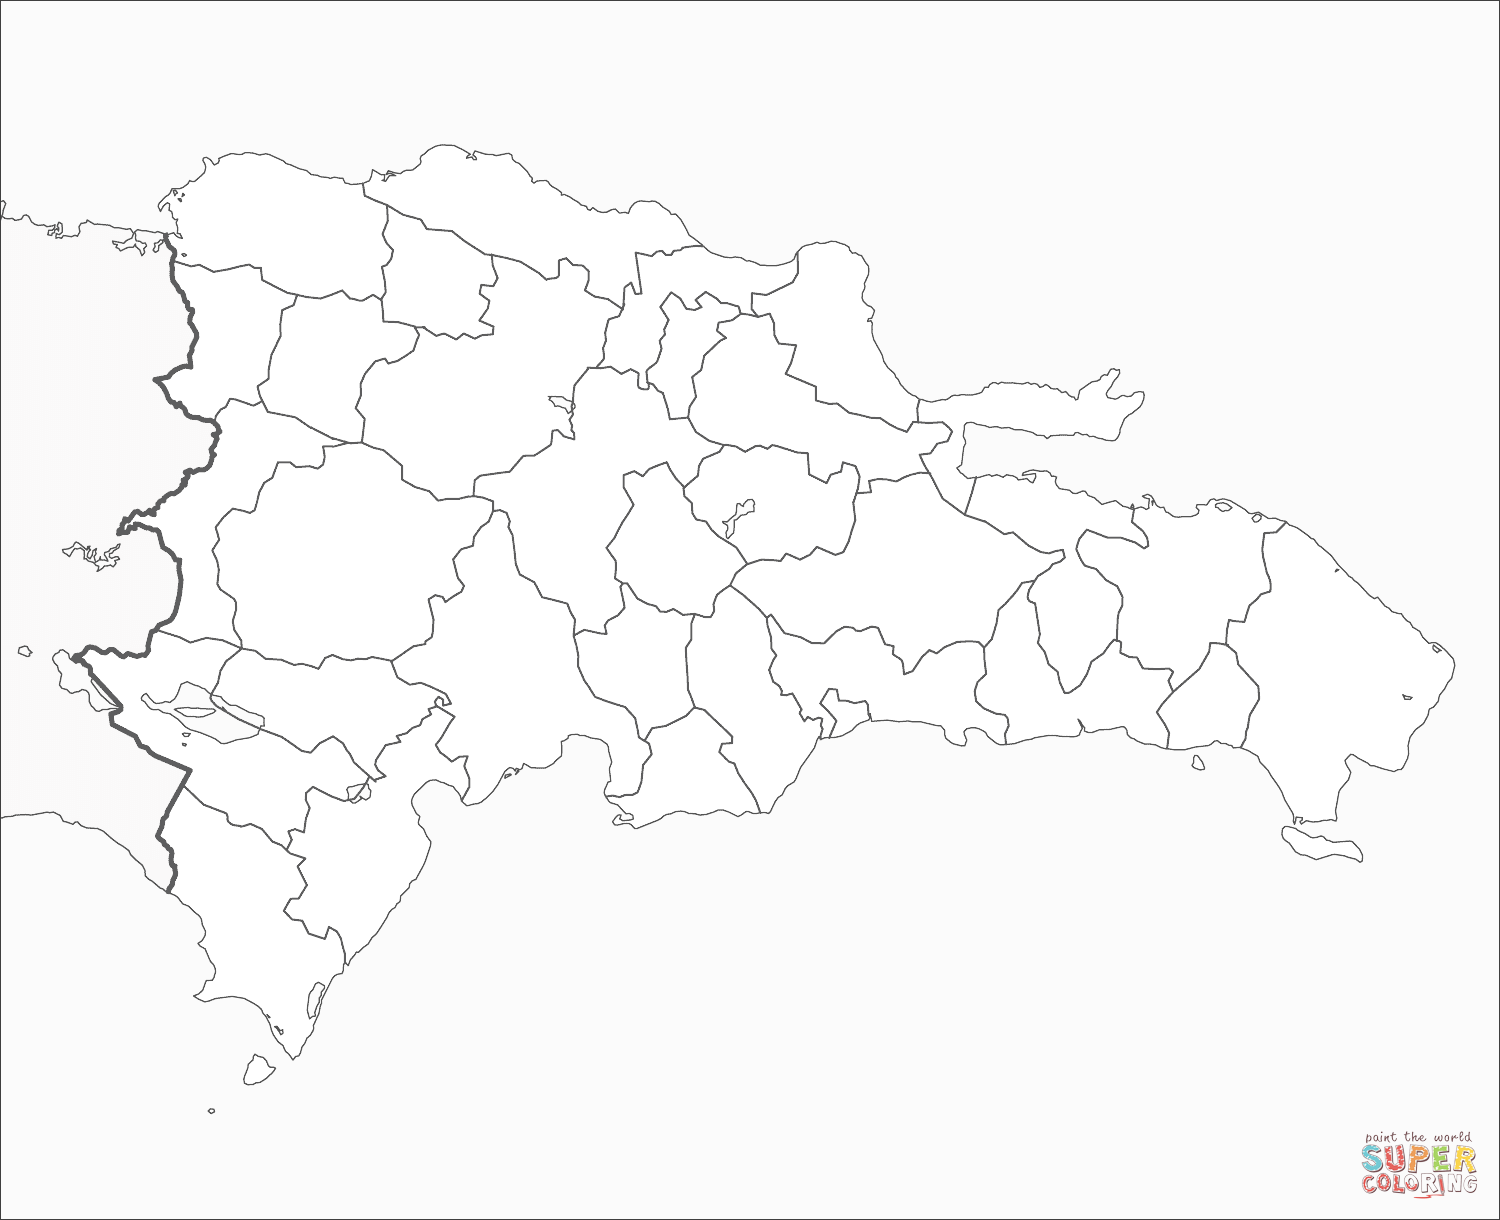 dominican republic map coloring page dominican republic flag coloring pages learny kids map dominican coloring page republic